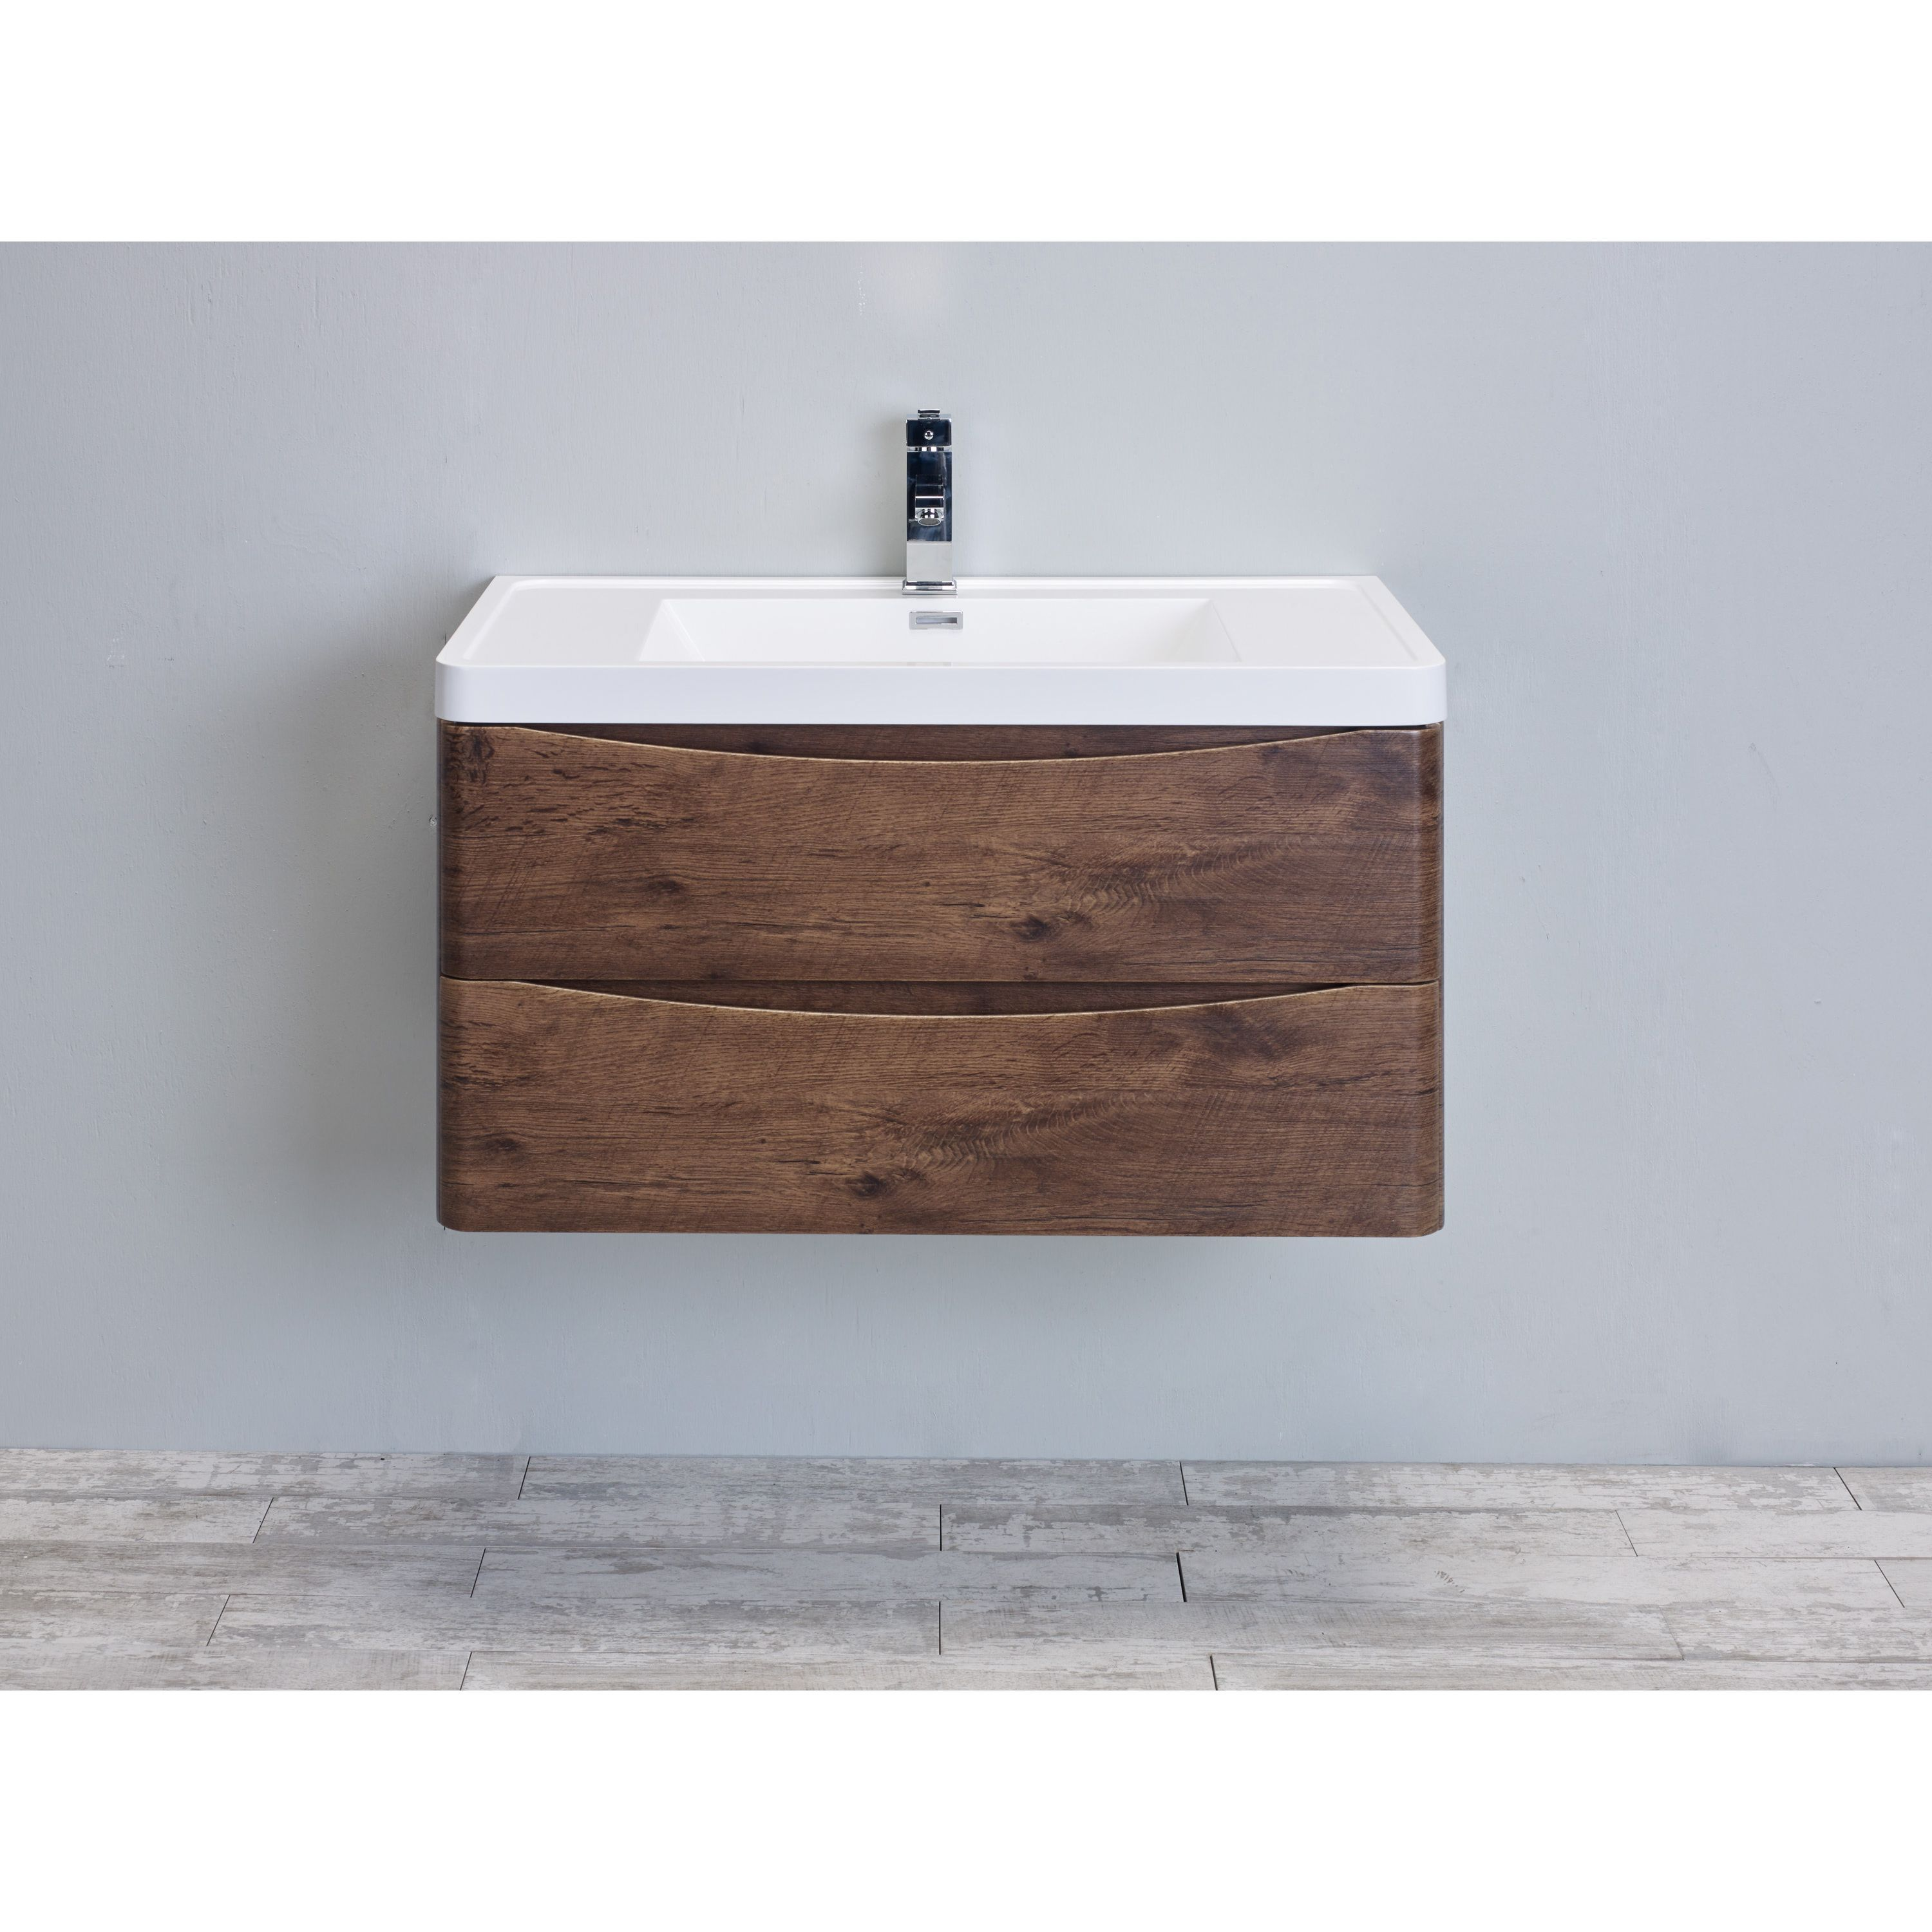 Eviva smile inch rosewood modern bathroom vanity set with